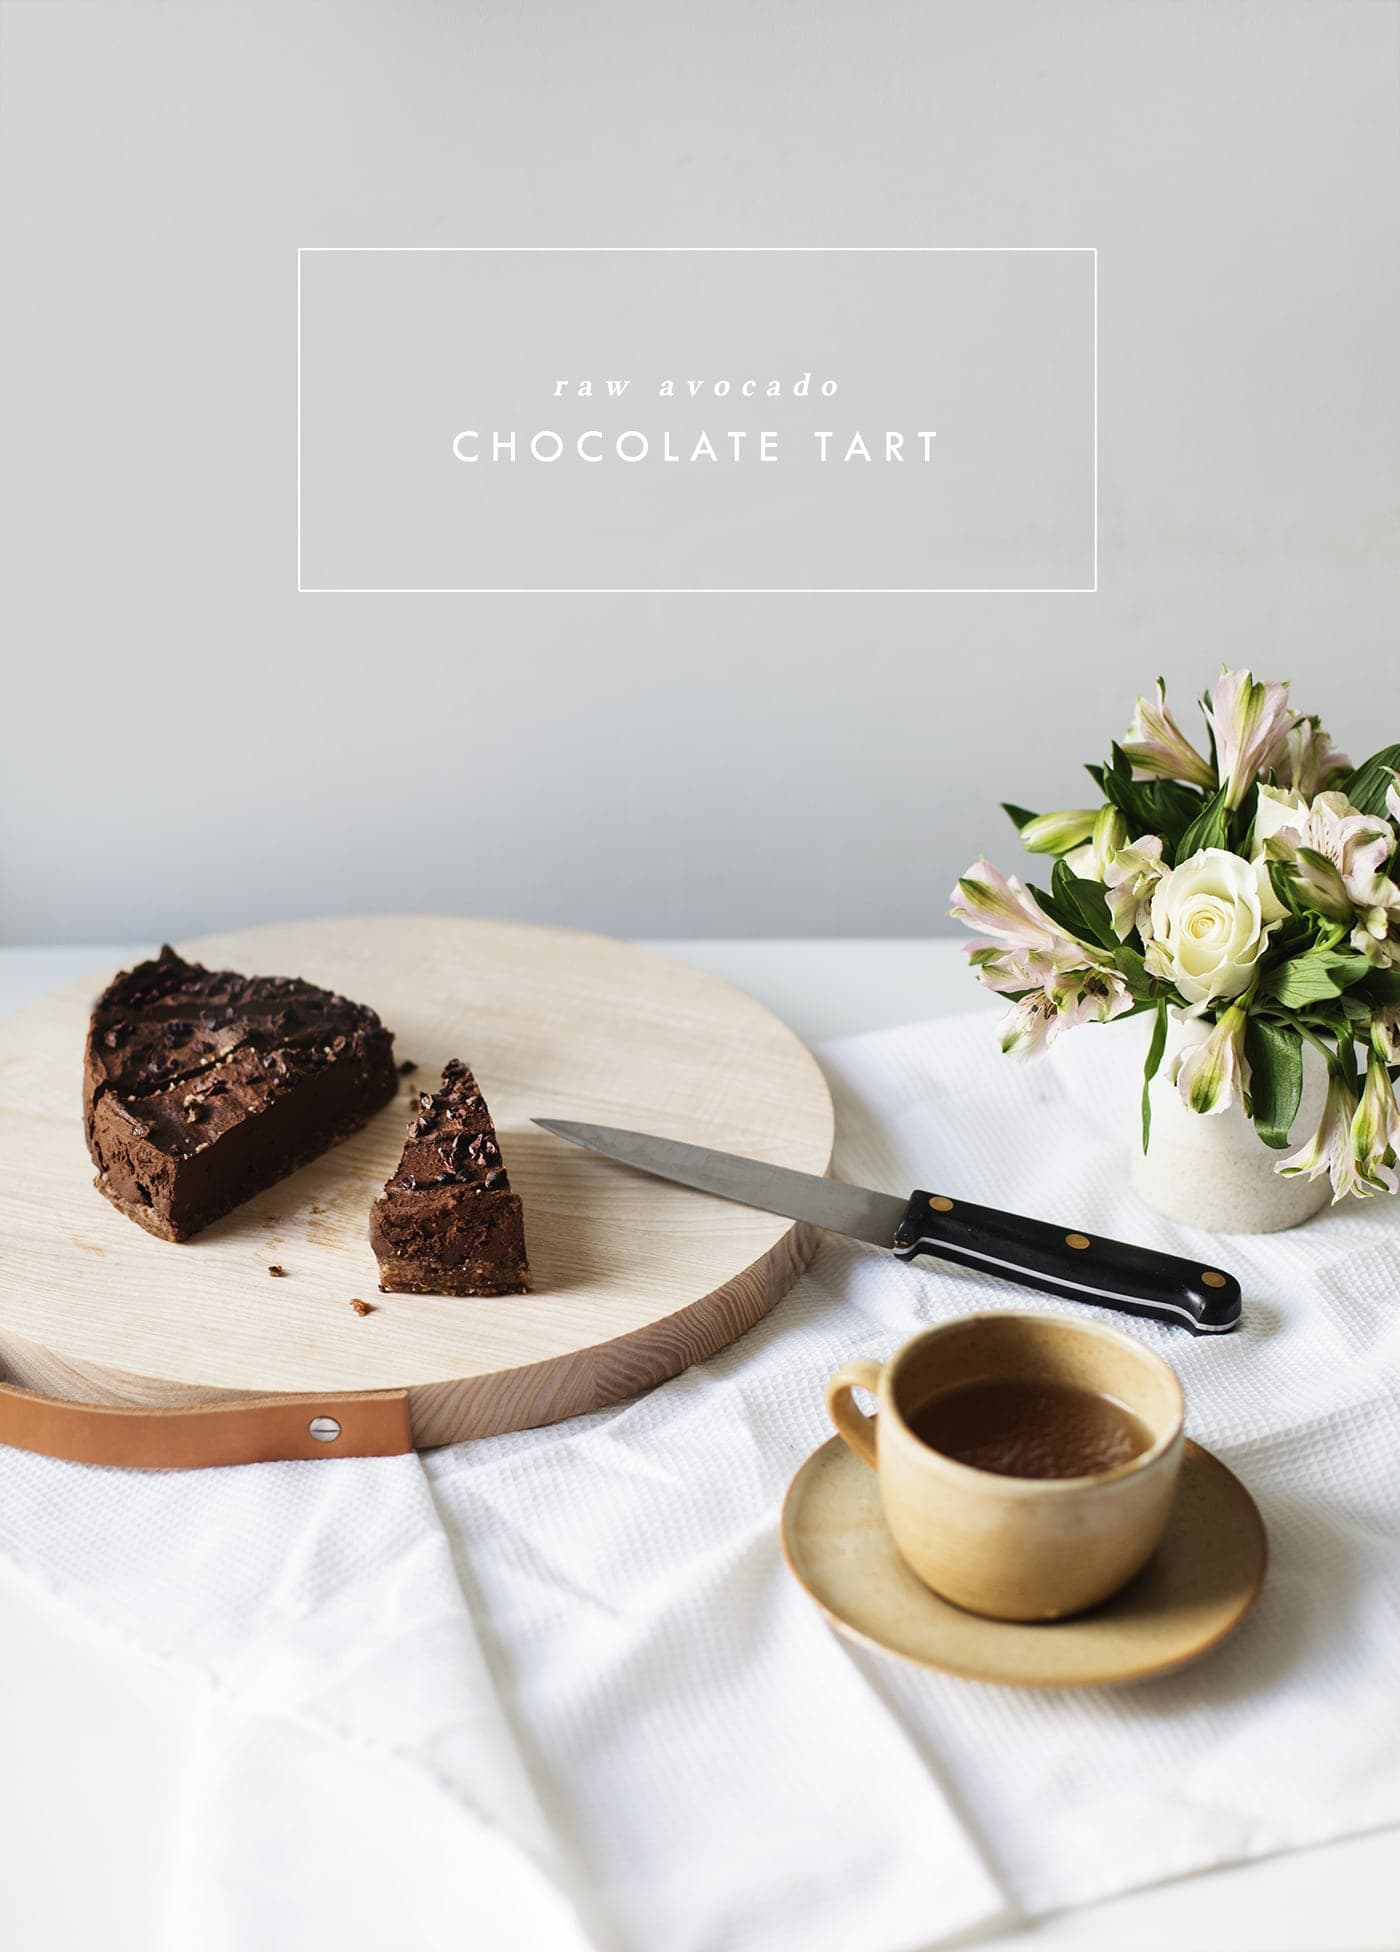 raw-avocado-chocolate-tart-paleo-dessert-gluten-free-dairy-free-healthier-sweet-treats